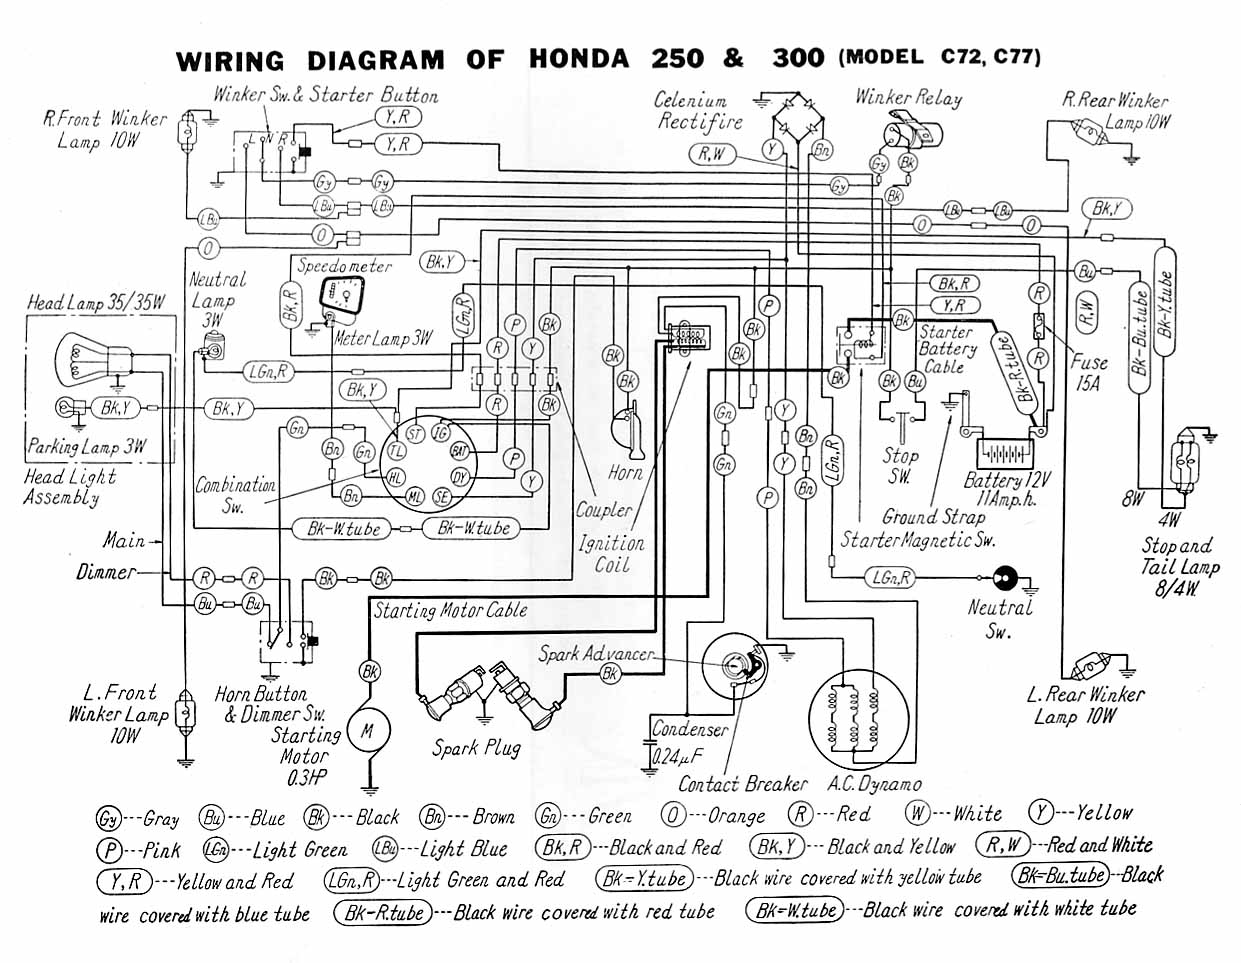 Automotive Diagrams Author At Wiring Page - Circuit Diagram Symbols •